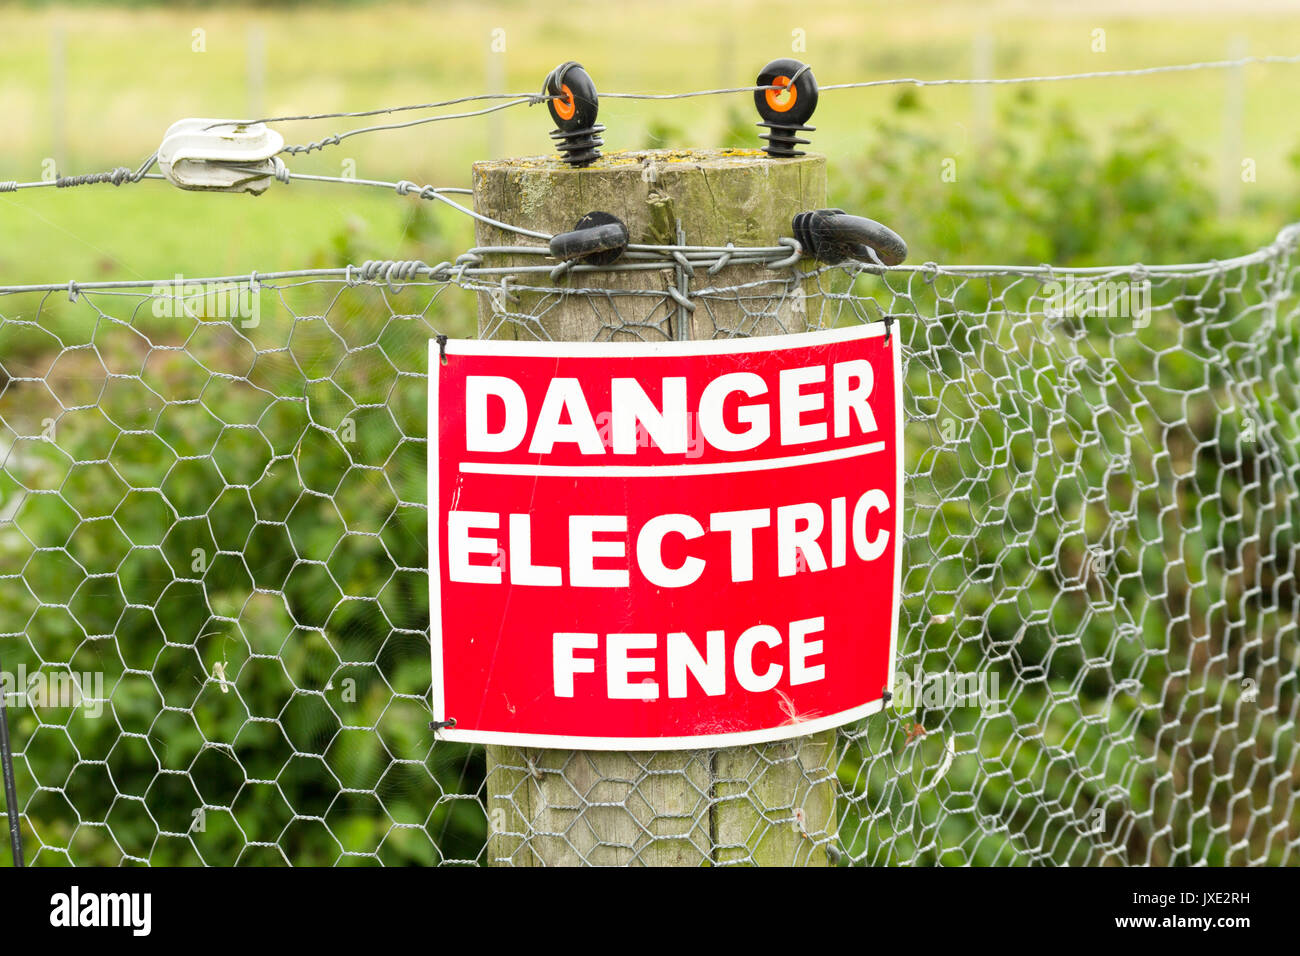 Low Voltage Stock Photos Images Alamy Electric Fence Tester Circuits Danger Sign On A Image